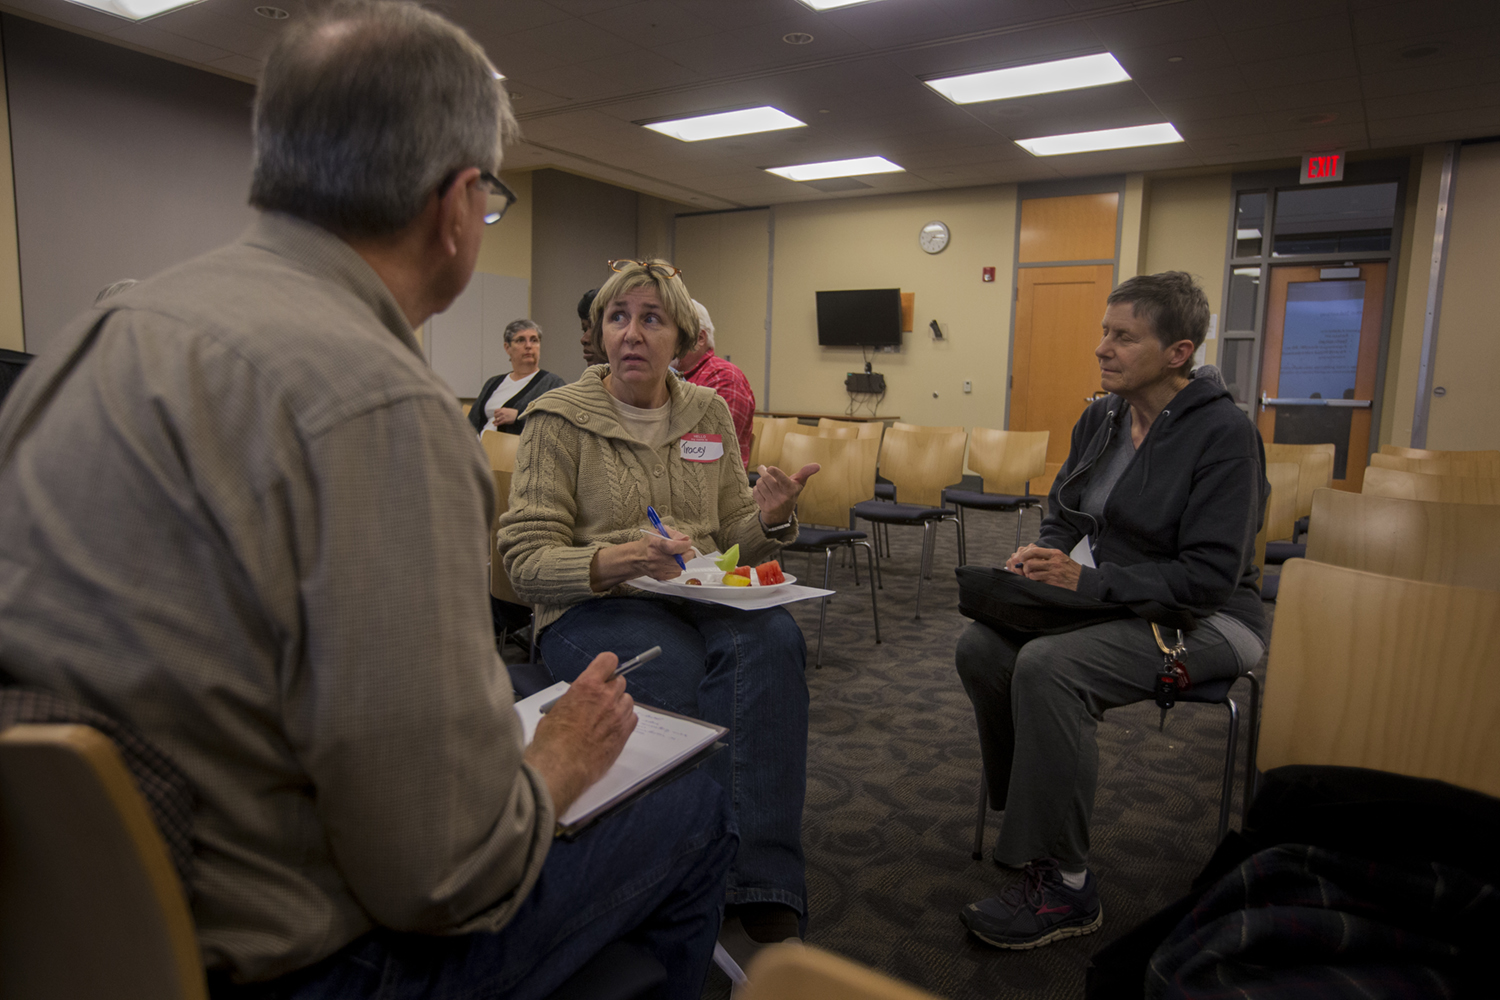 Attendees participate in a group activity during an Iowa City Human Rights Commission event in the Iowa City Public Library on Thursday, October 13, 2016. The event was broken up into two sections, the first focusing on how to engage individuals, and the second on survey result findings from the Iowa City school district.